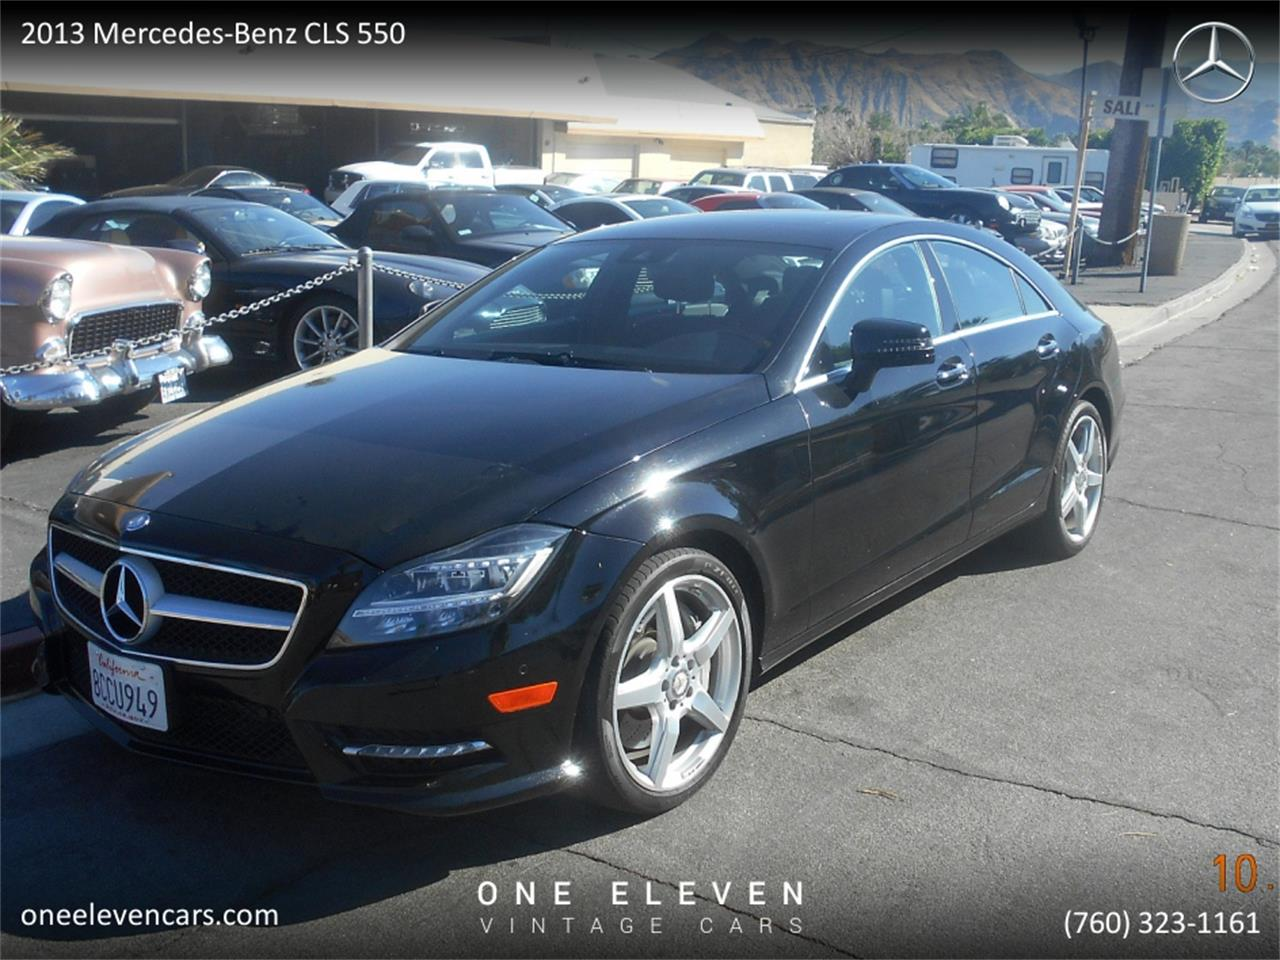 for sale 2013 mercedes-benz cls-class in palm springs, california cars - palm springs, ca at geebo